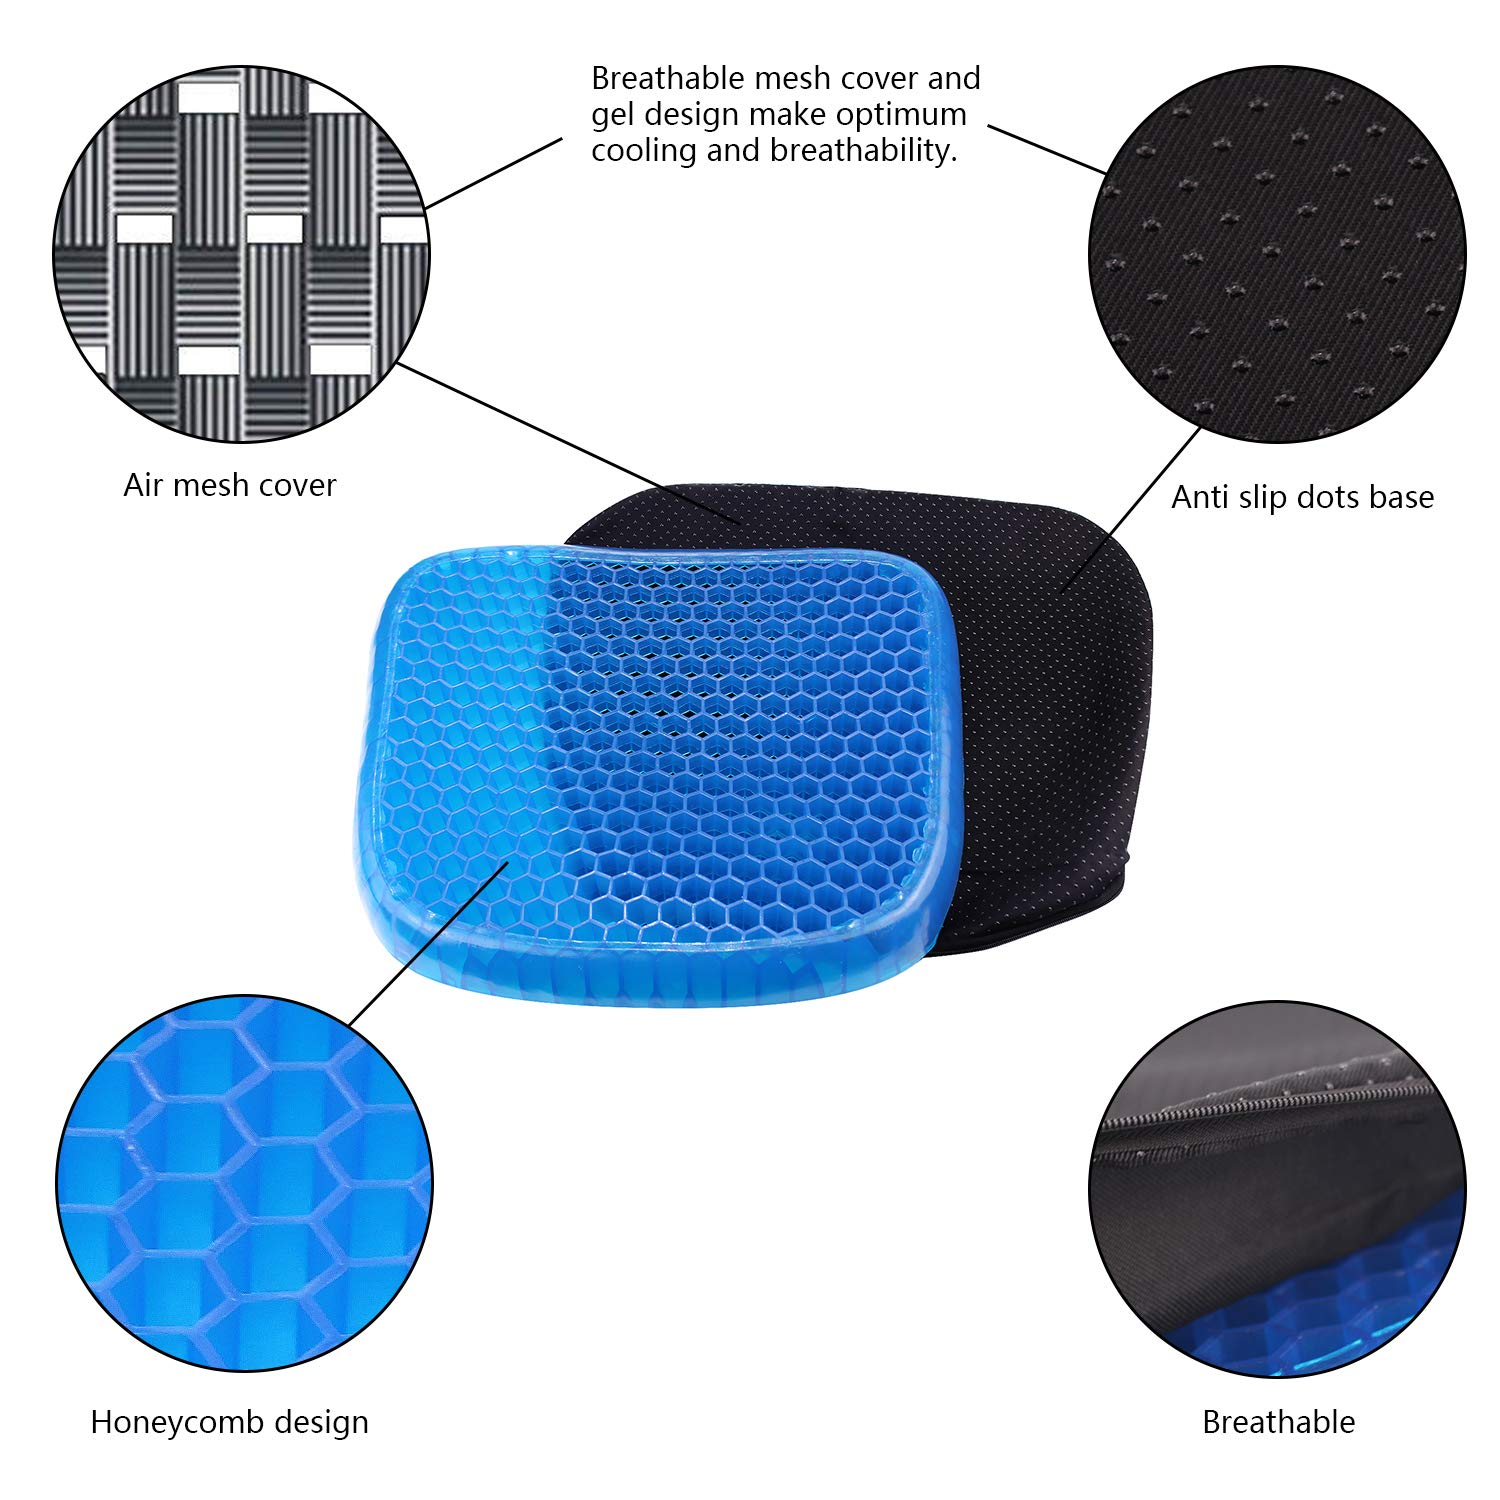 Premewish Gel Seat Cushion Breathable Pain Relief Seat Cushion with Non-Slip Cover Advanced Elastic Cool Gel Seat Cushion Honeycomb Designed Soft Gel Pad for Office Chair Wheelchair (S/37X34.5X3CM)